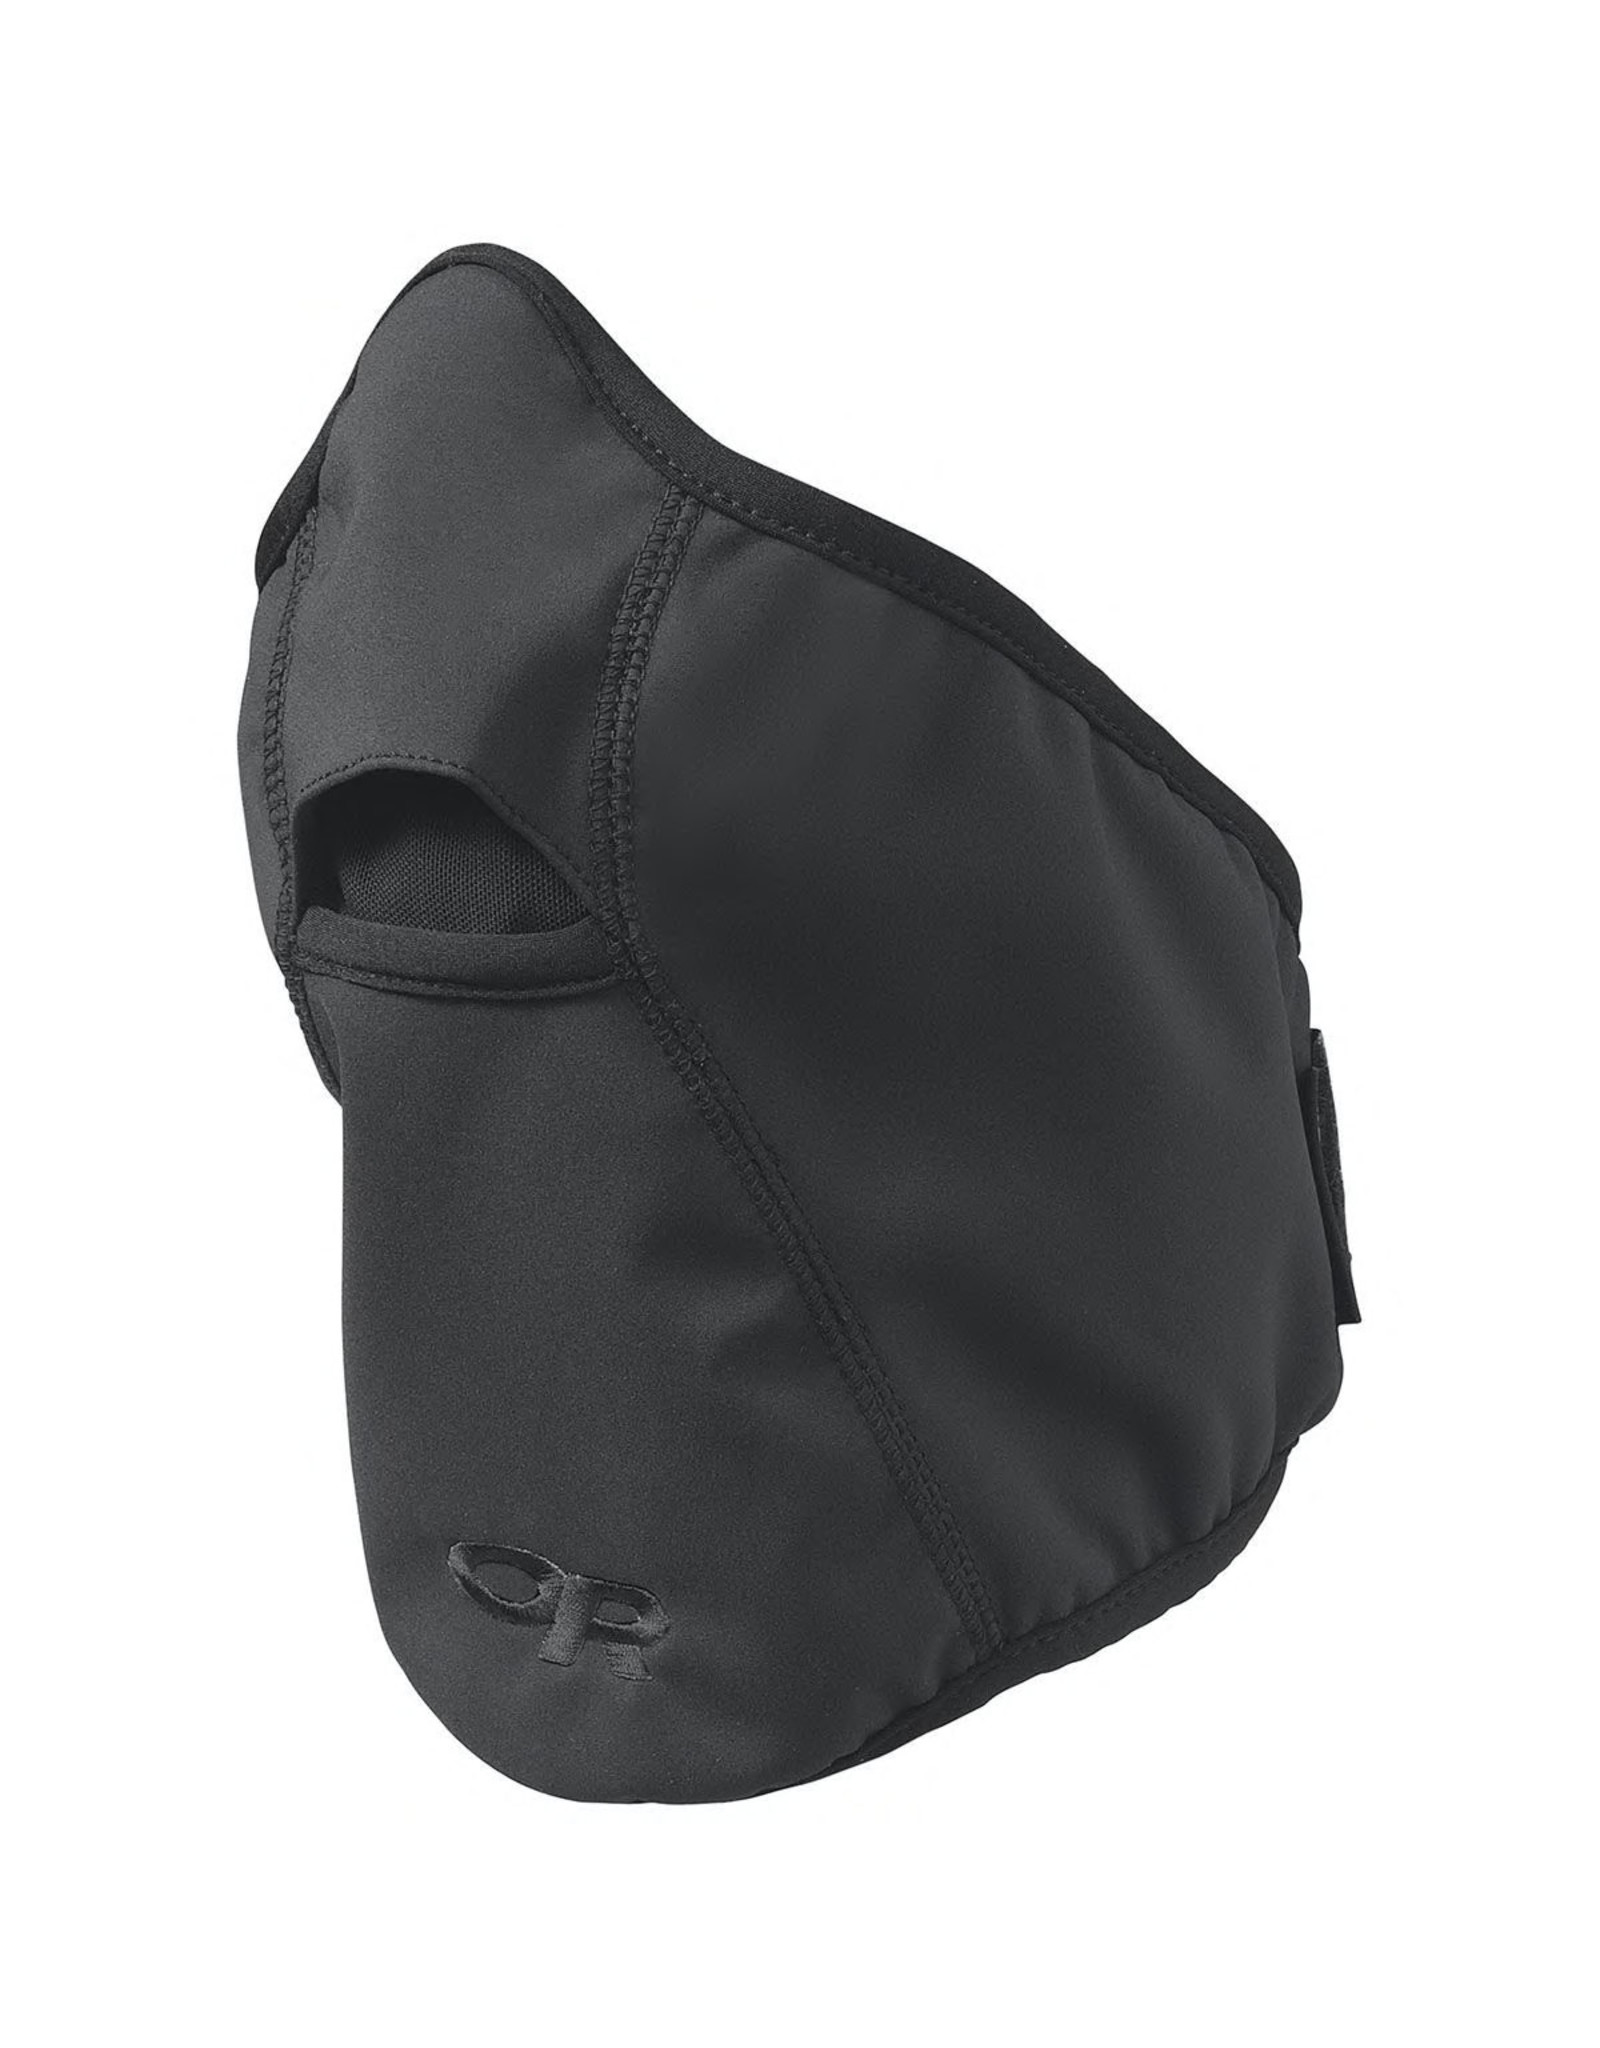 Outdoor Research Outdoor Research Stormtracker Face Mask